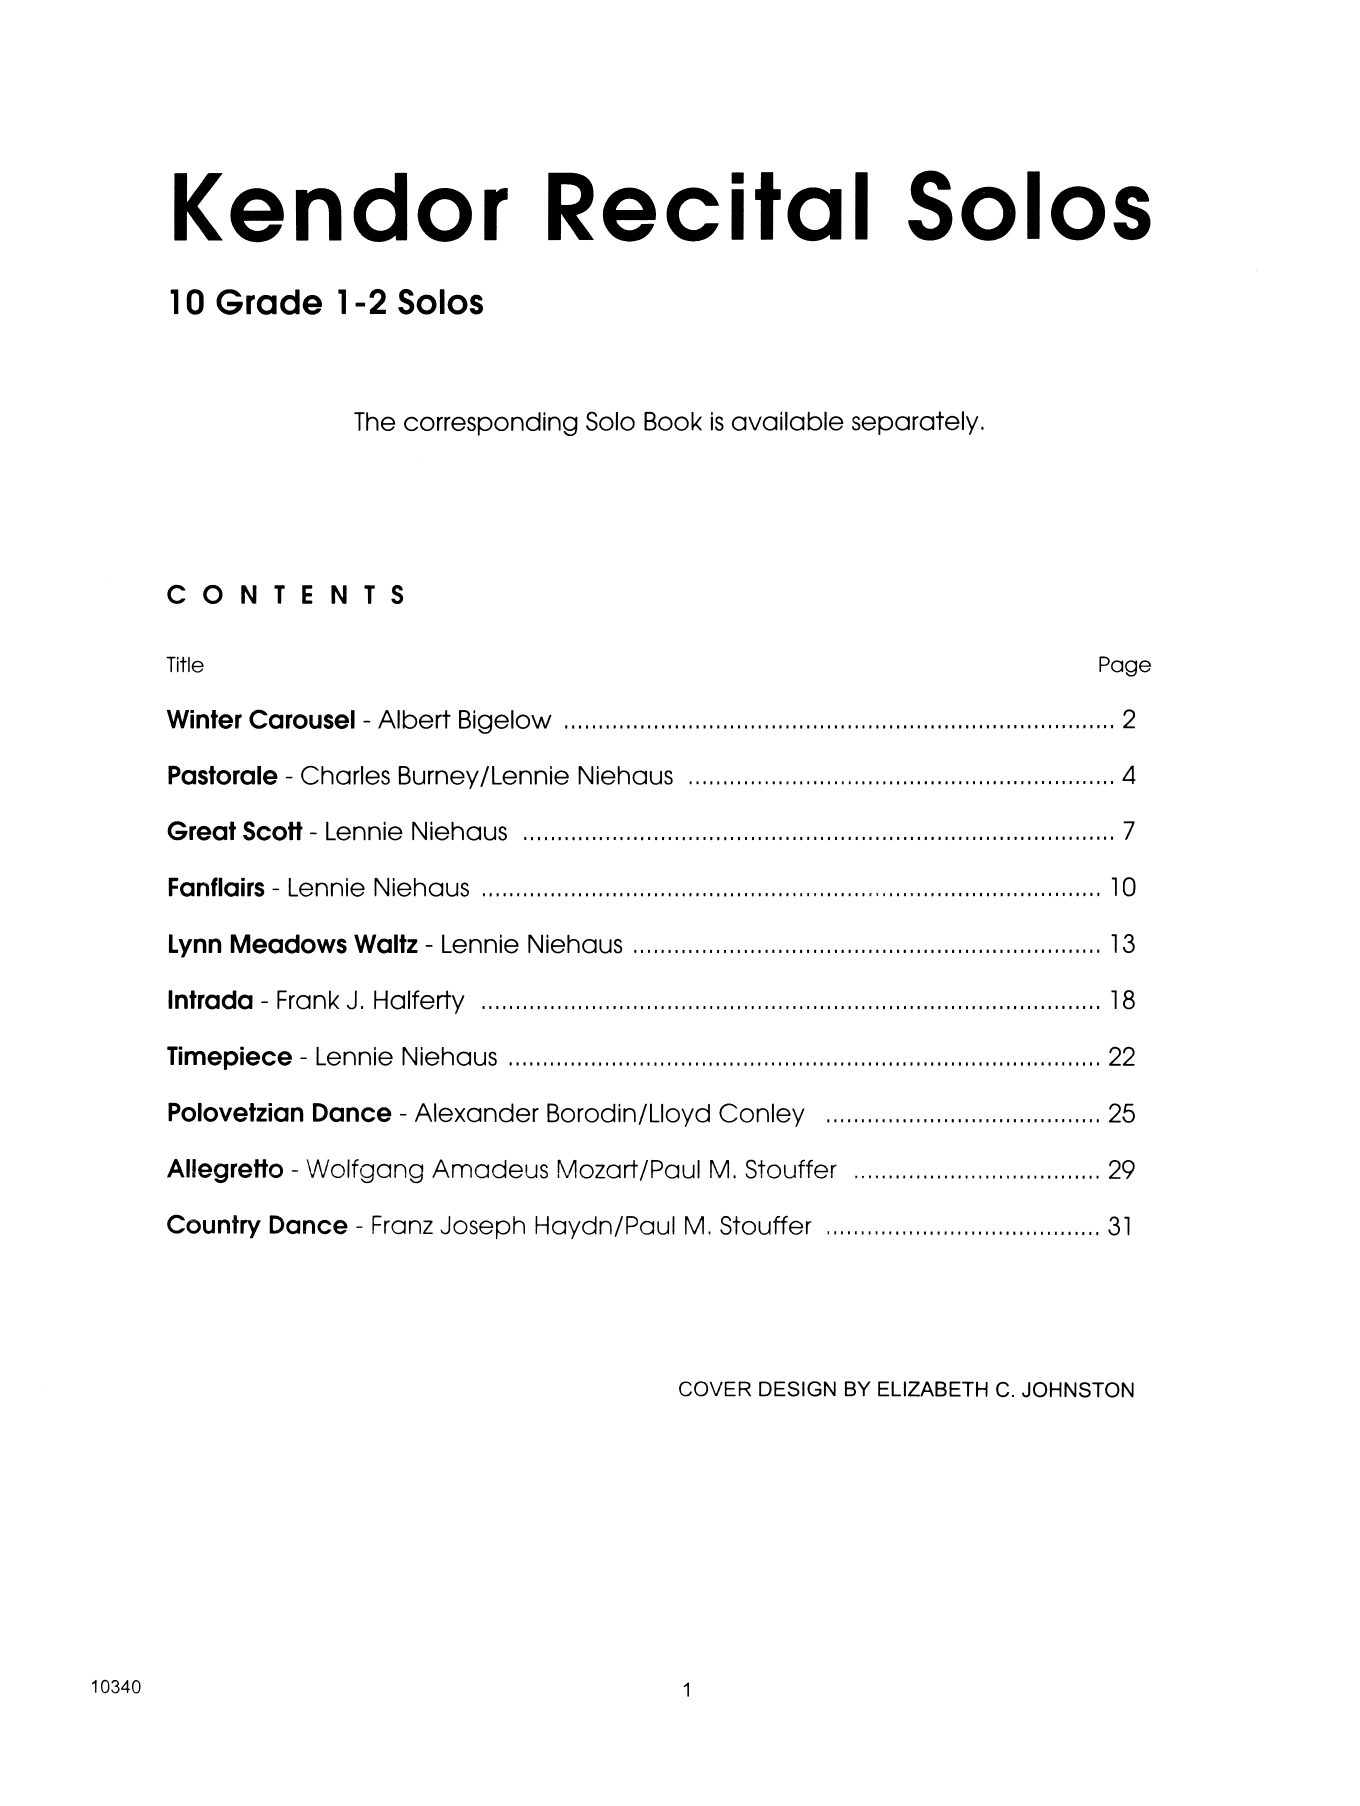 Kendor Recital Solos - Trumpet - Piano Accompaniment Sheet Music